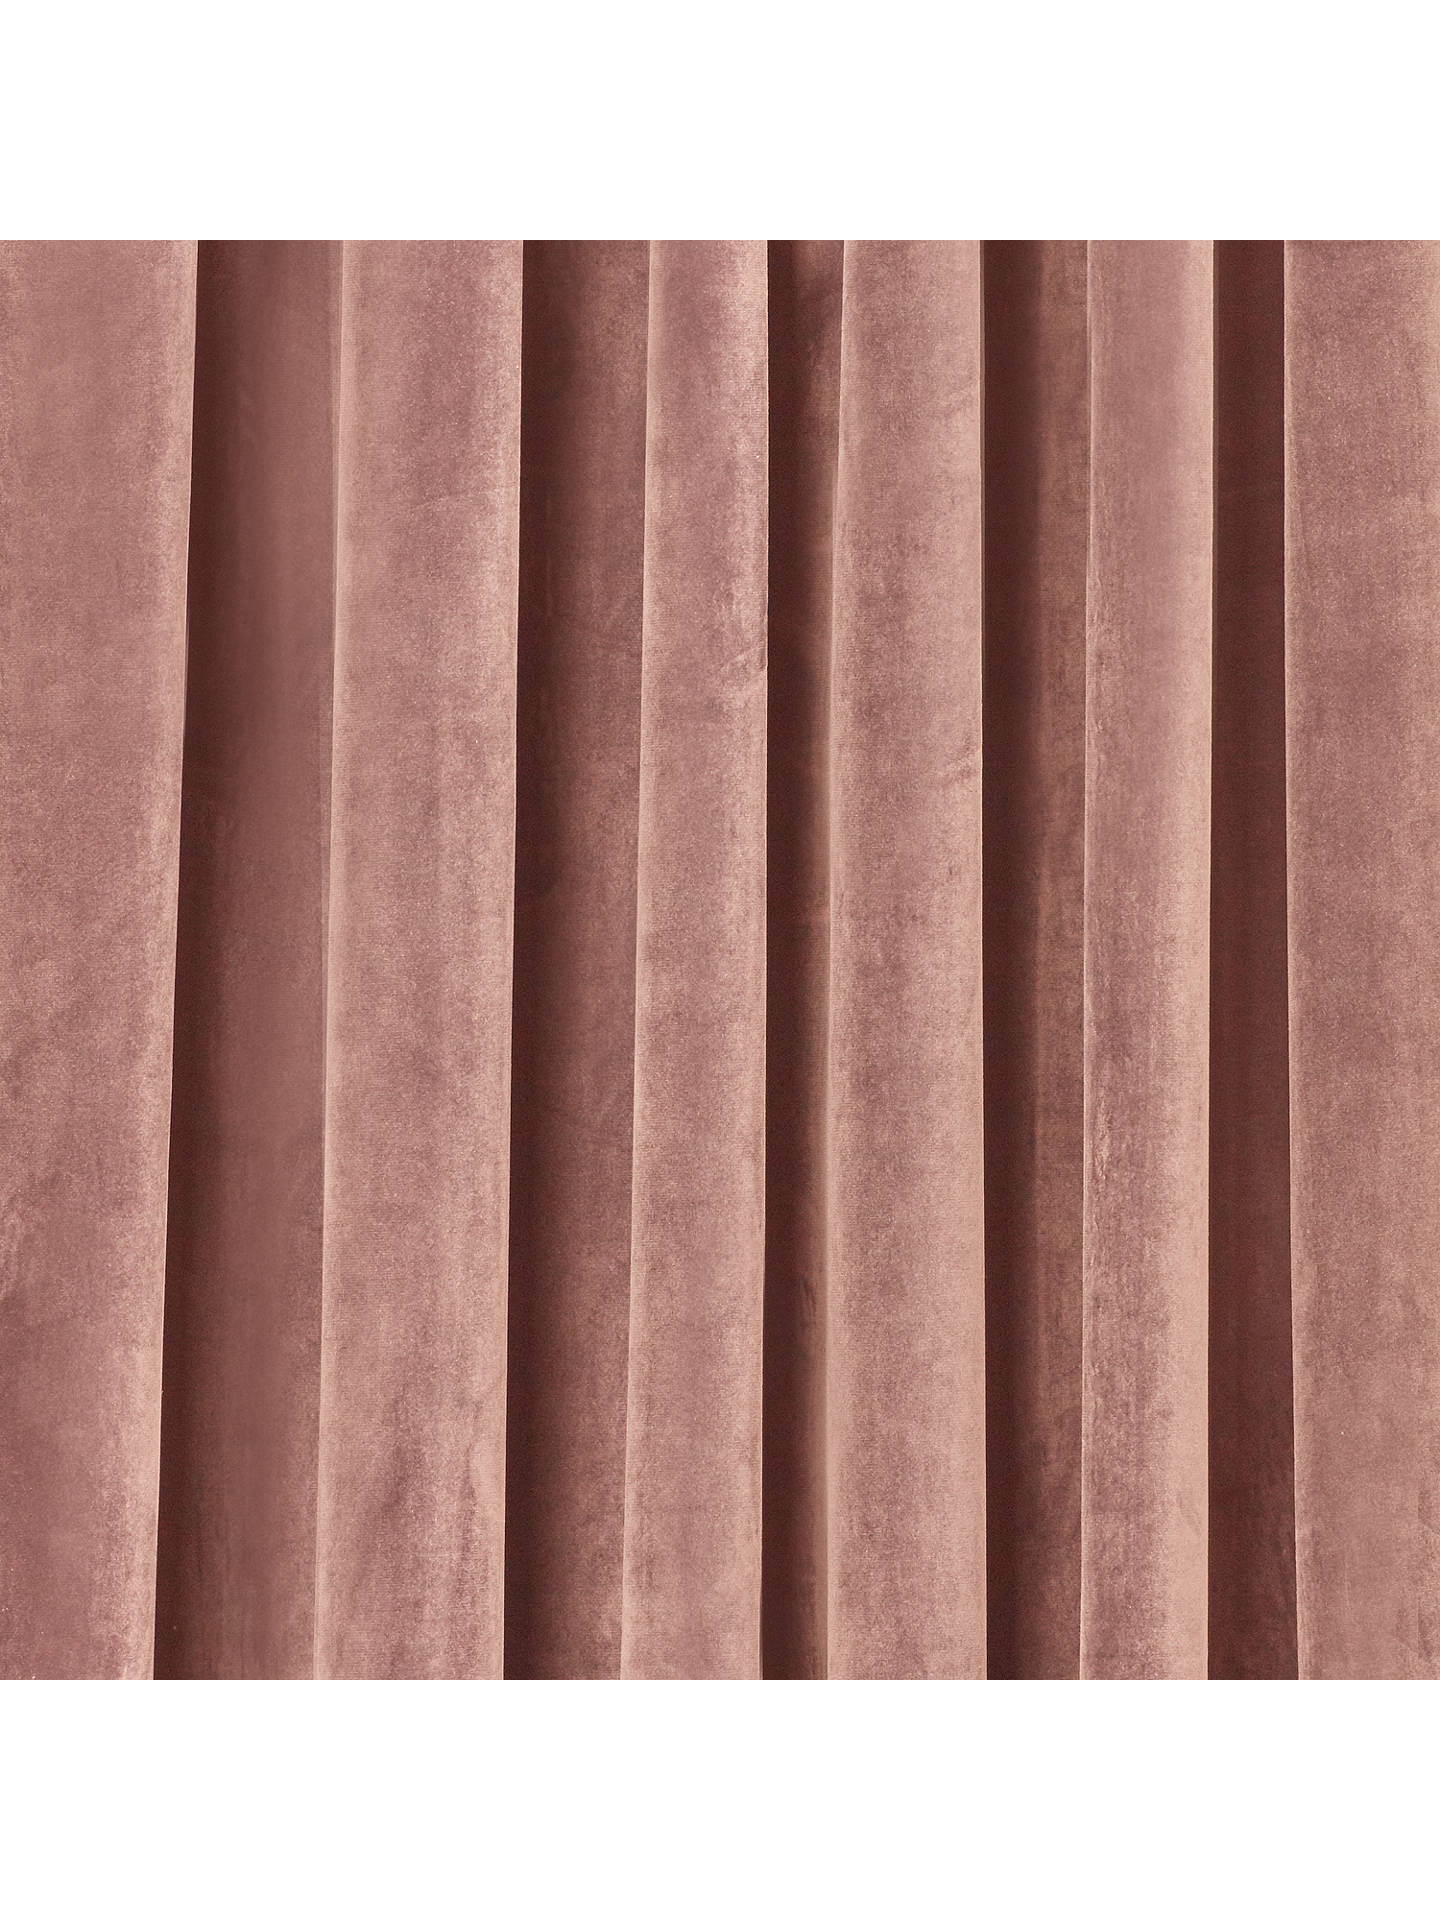 Buy John Lewis & Partners Lustre Velvet Pair Lined Multiway Curtains, Pink, W228 x Drop 274cm Online at johnlewis.com